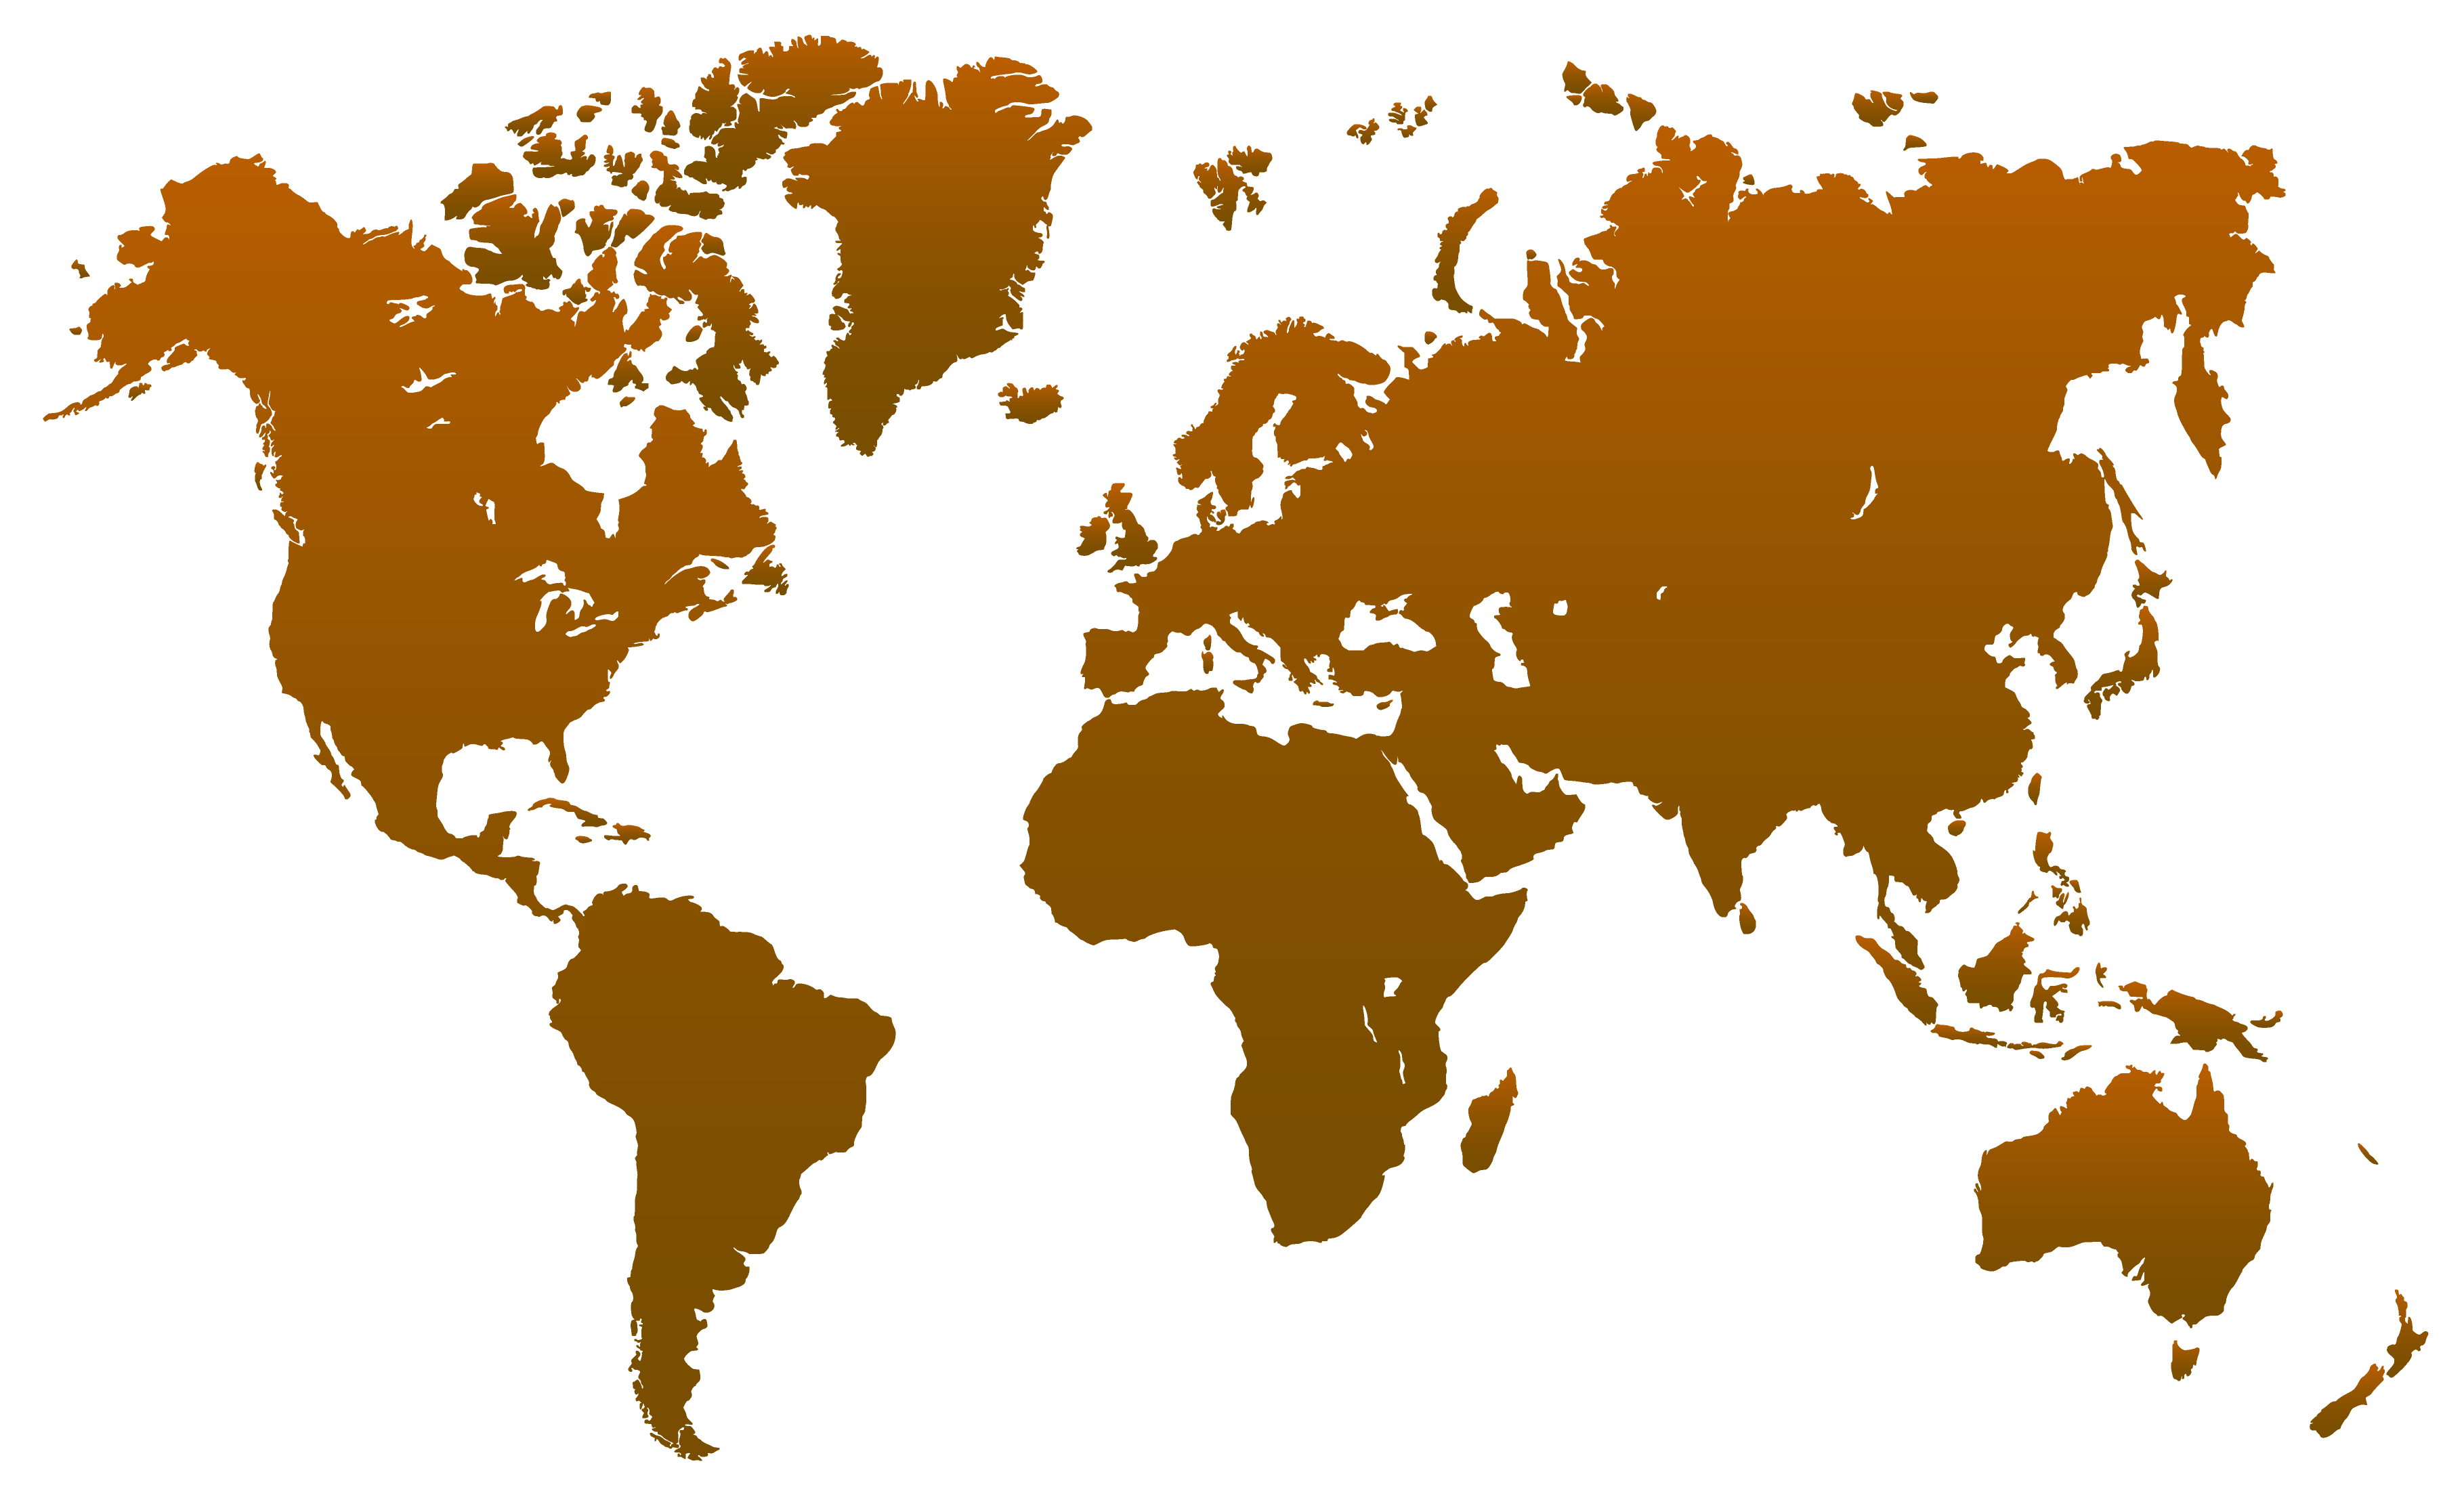 World map png image. Transparent stickpng landmarks global